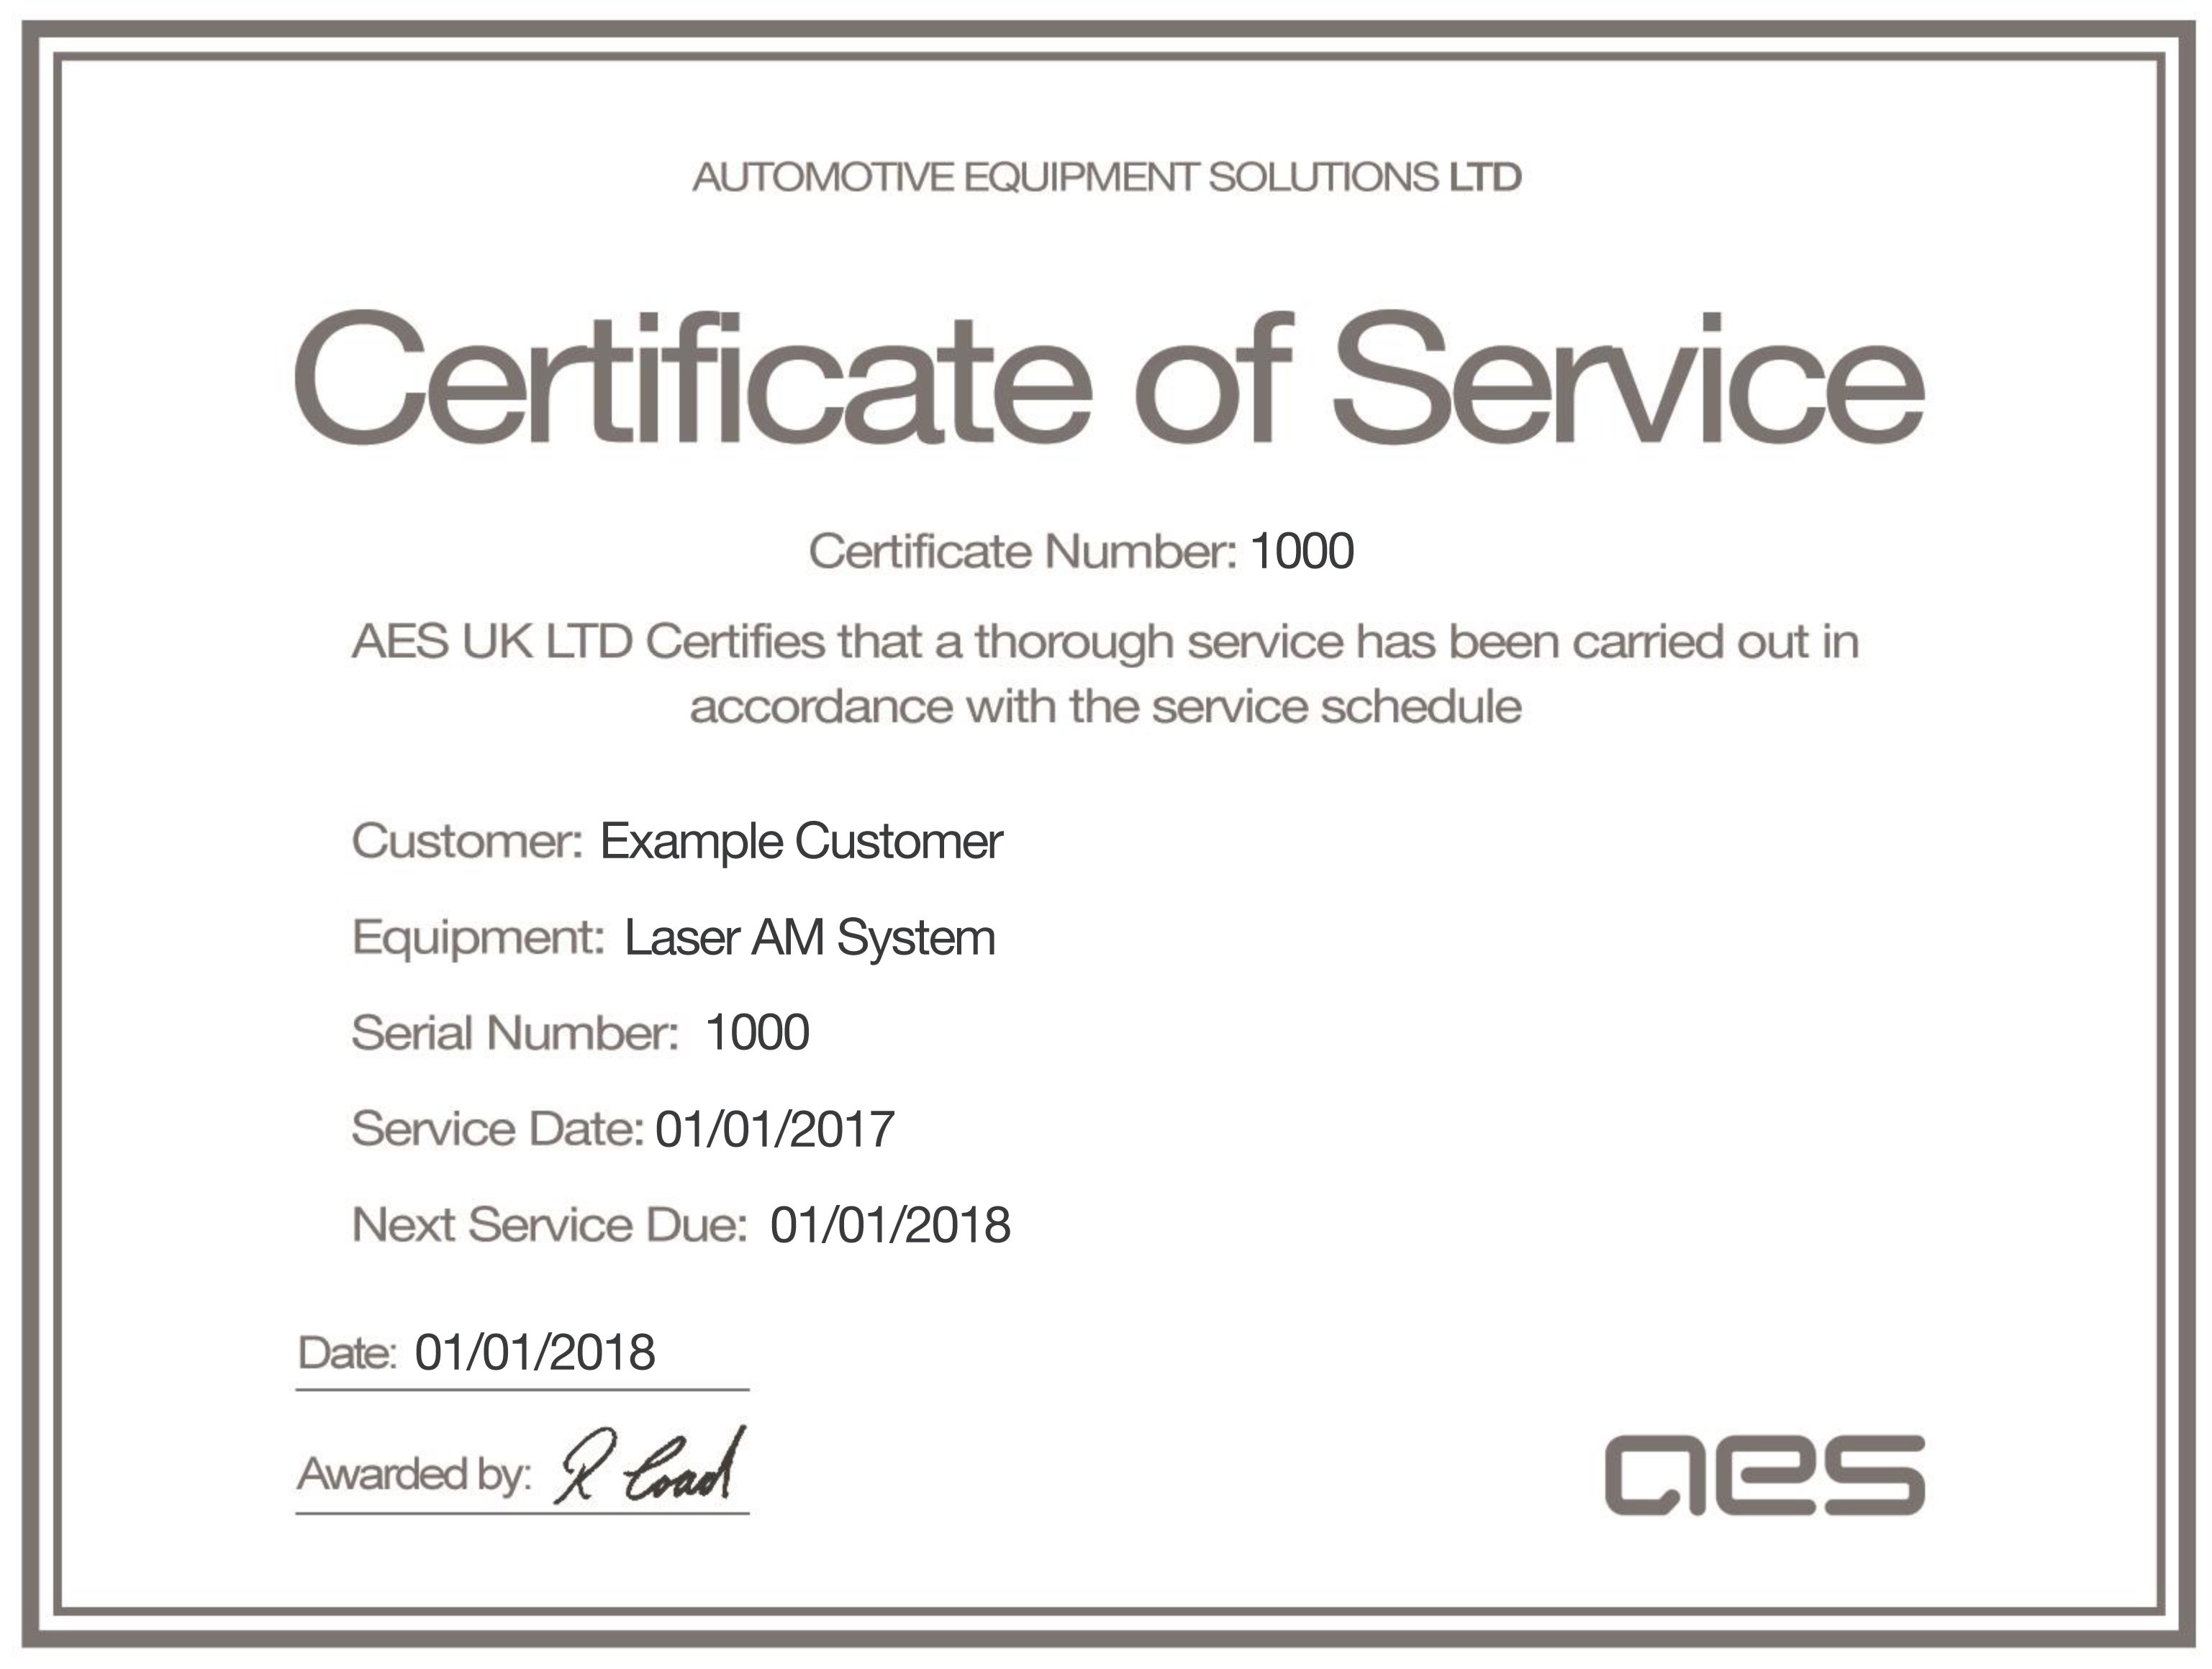 Certificate of service gallery editable certificate template for Certificate of service template